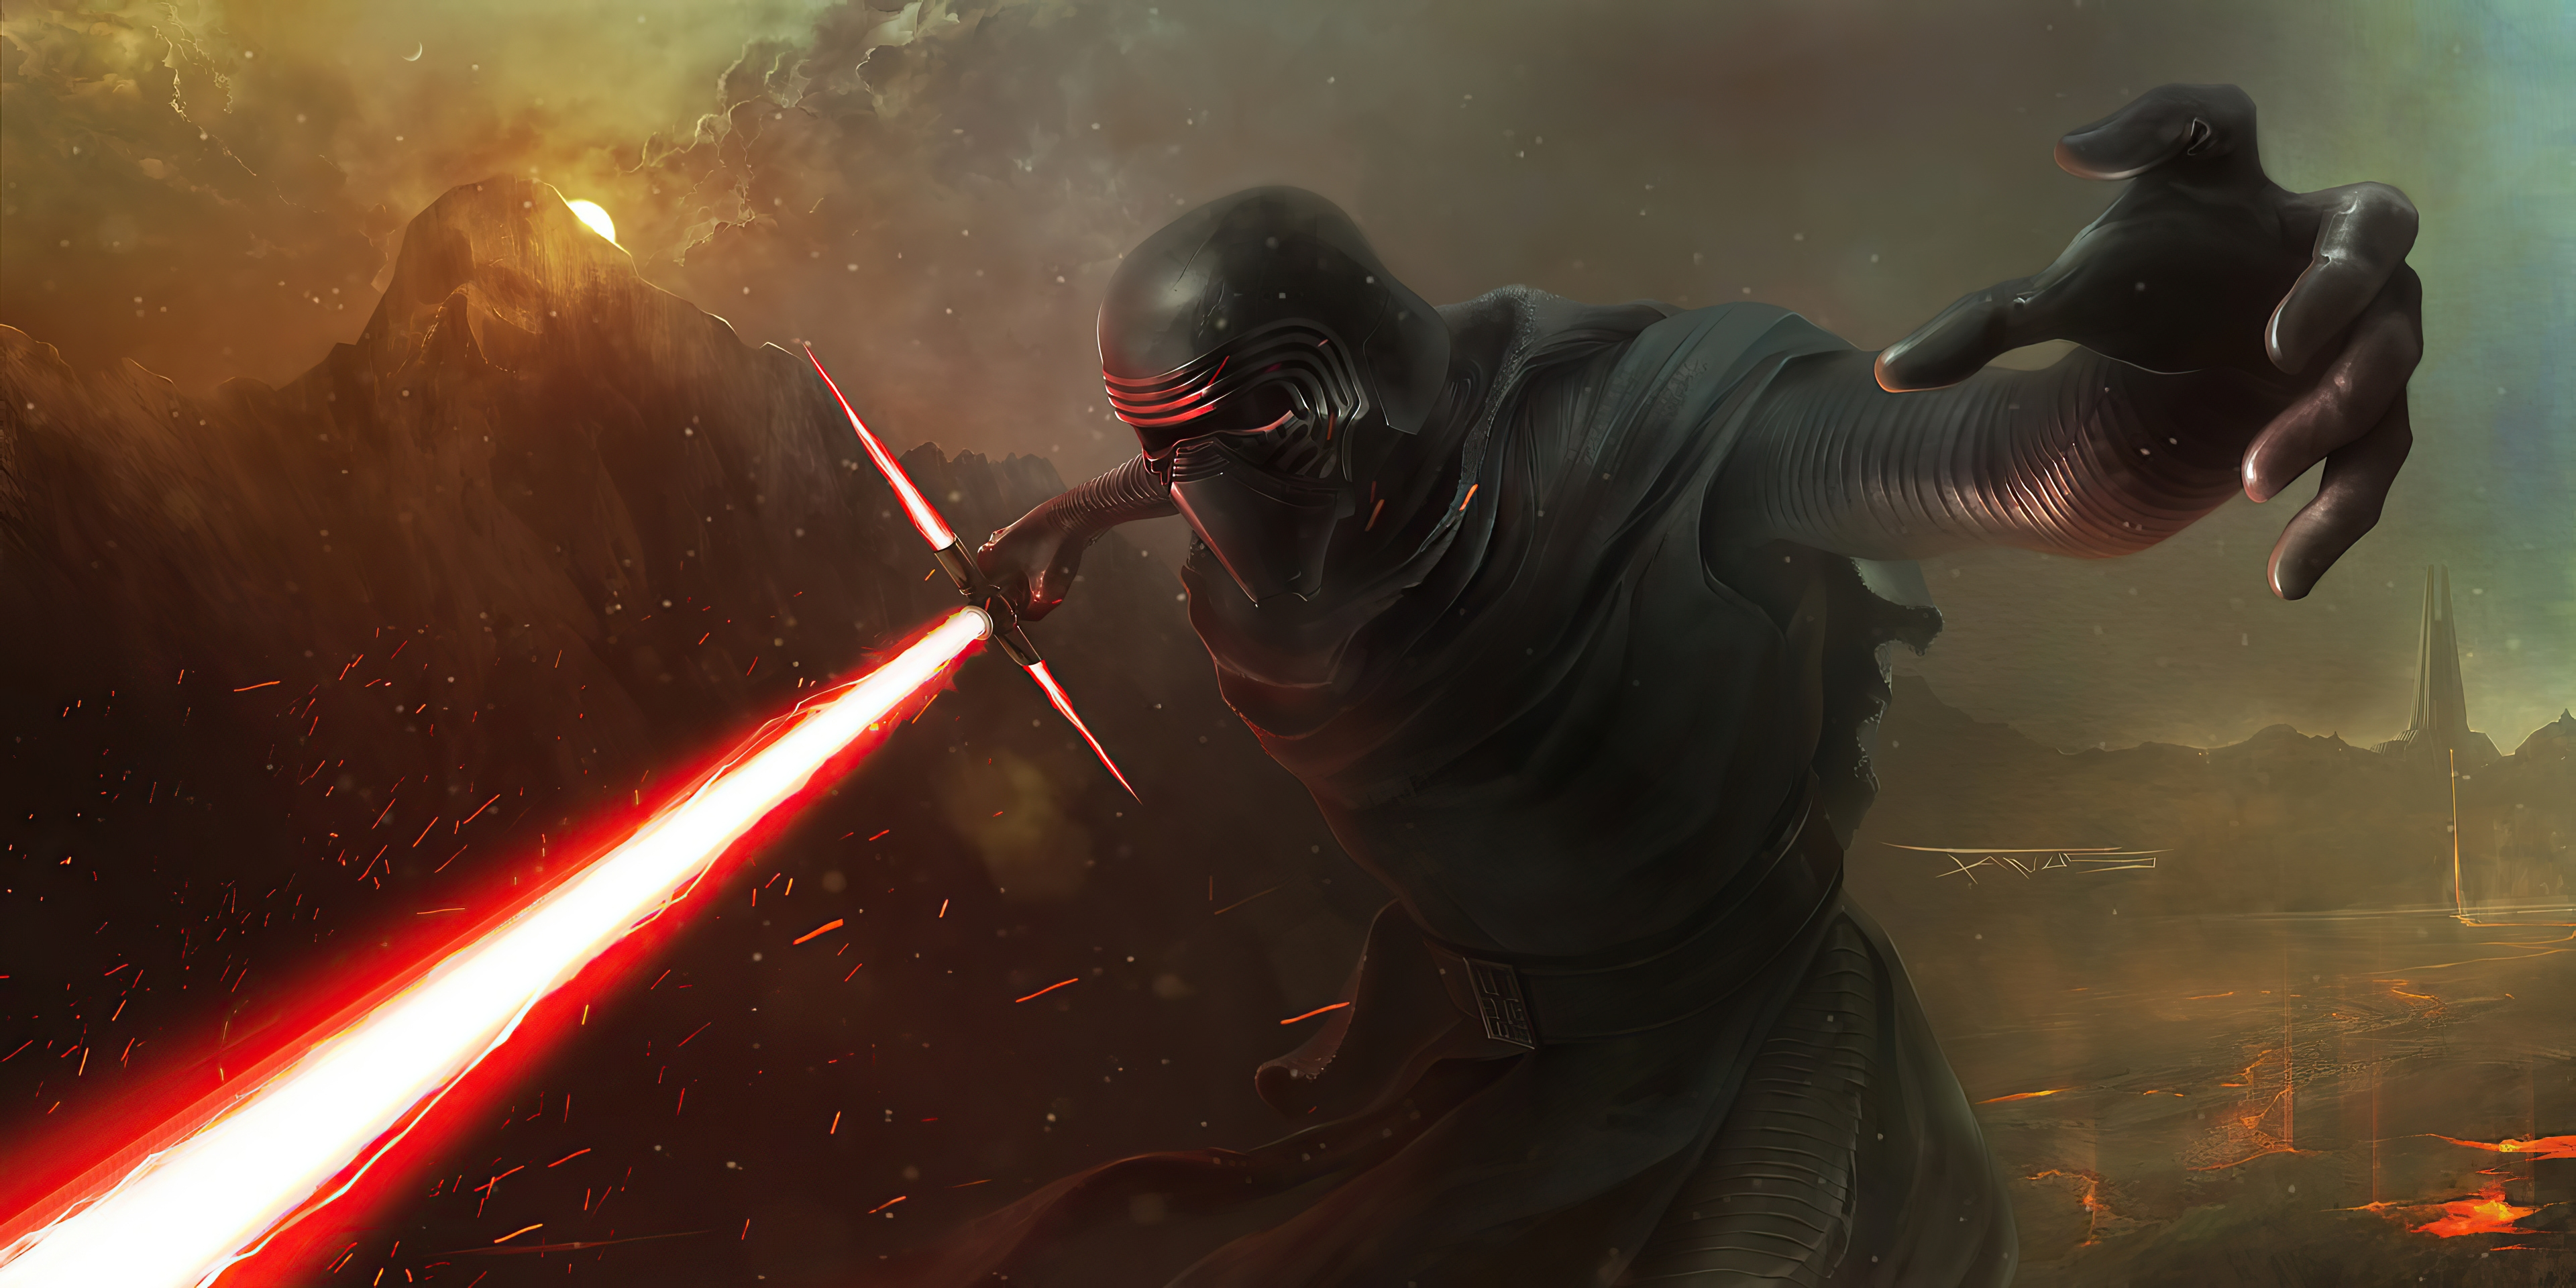 kylo ren star wars 4k 2020 wallpaper 1743751599107585